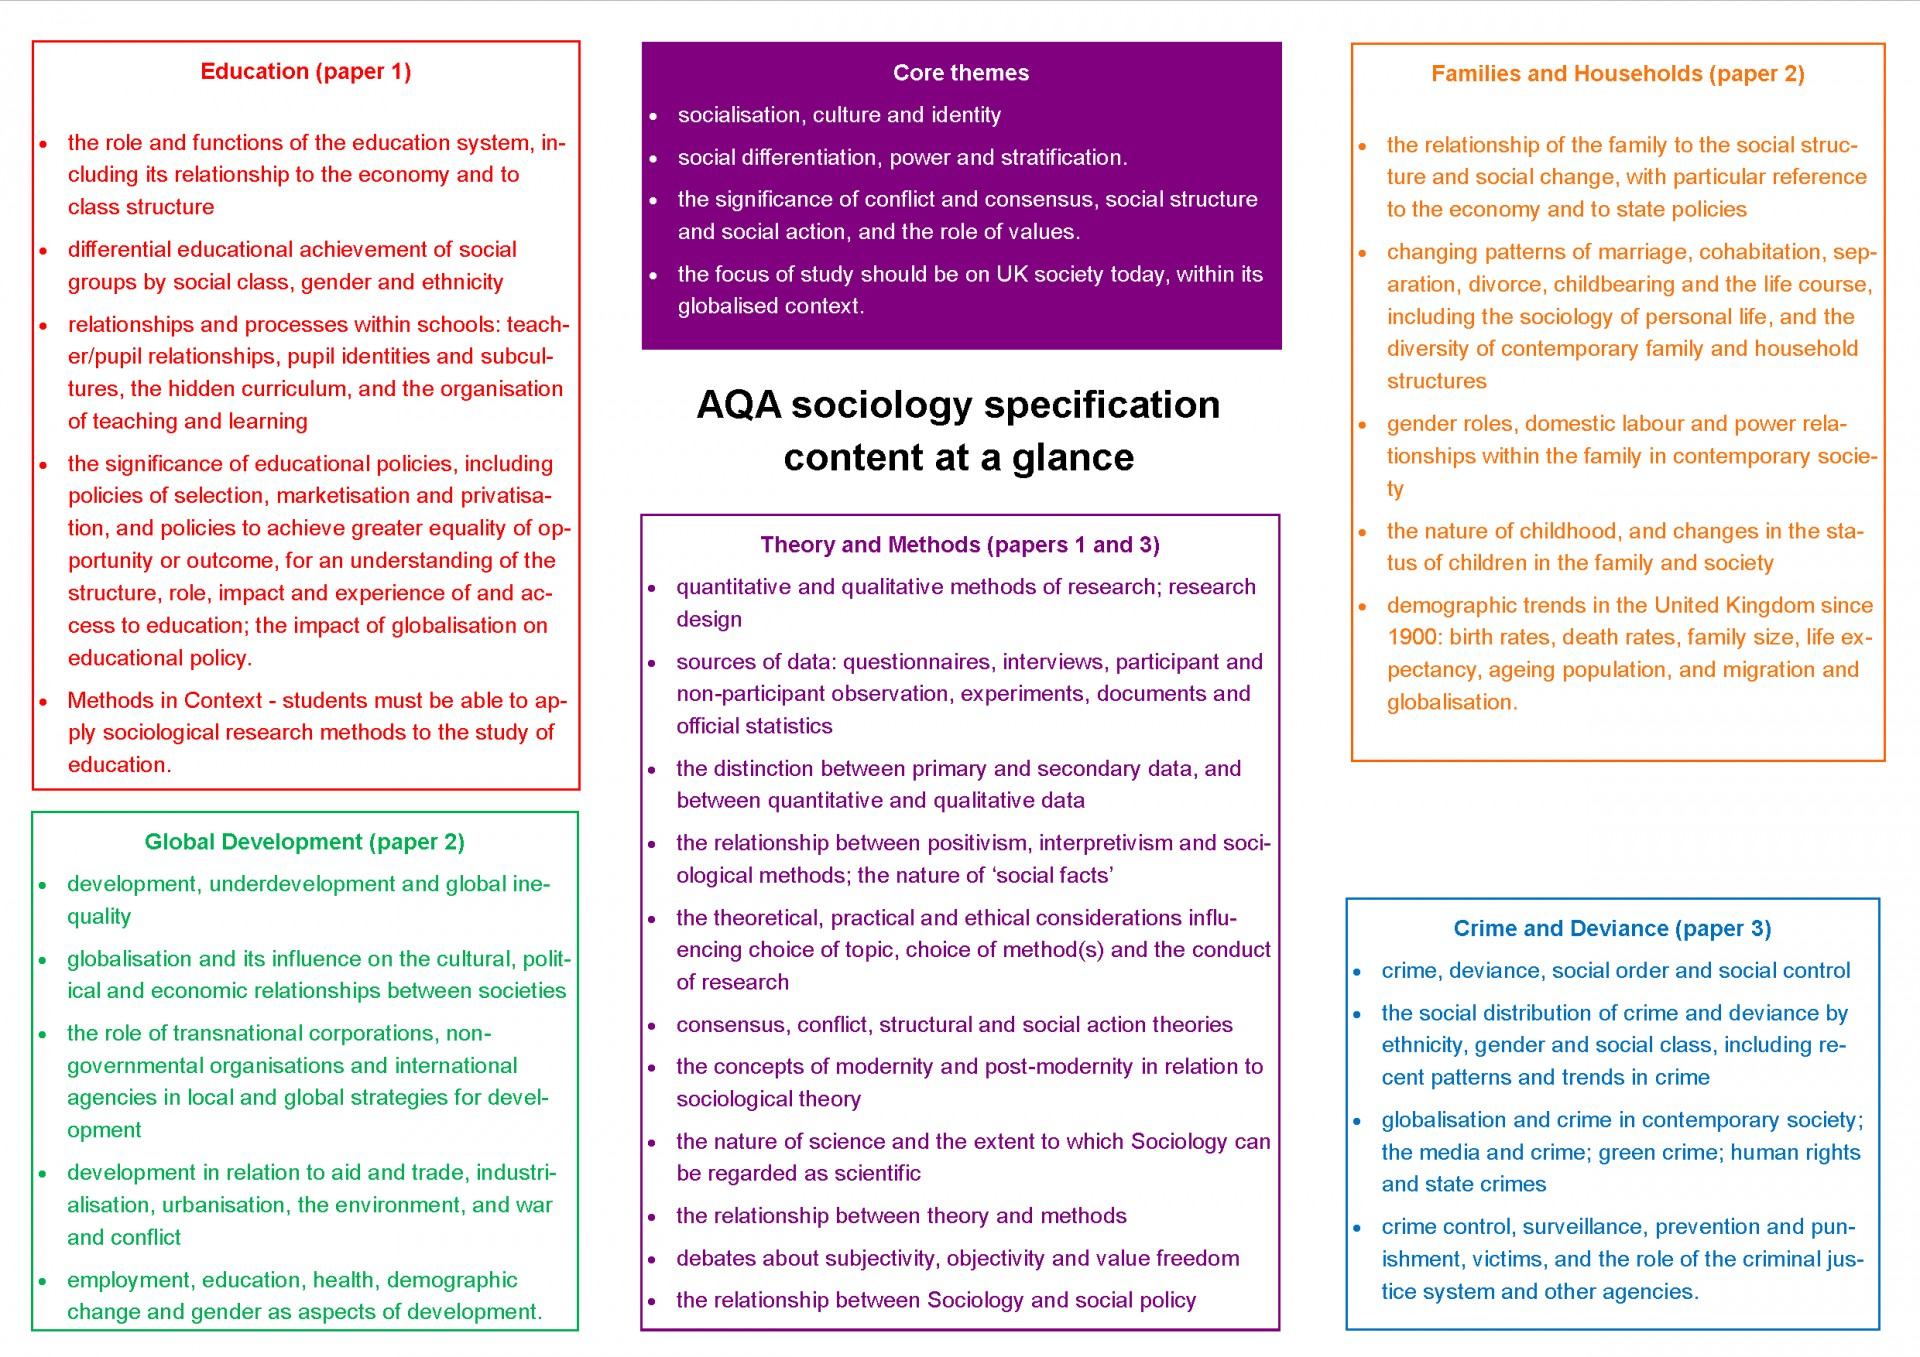 002 Aqa Sociology Specification Content At Glance1 Research Paper Methods Past Fantastic Papers Gcse Questions 1920